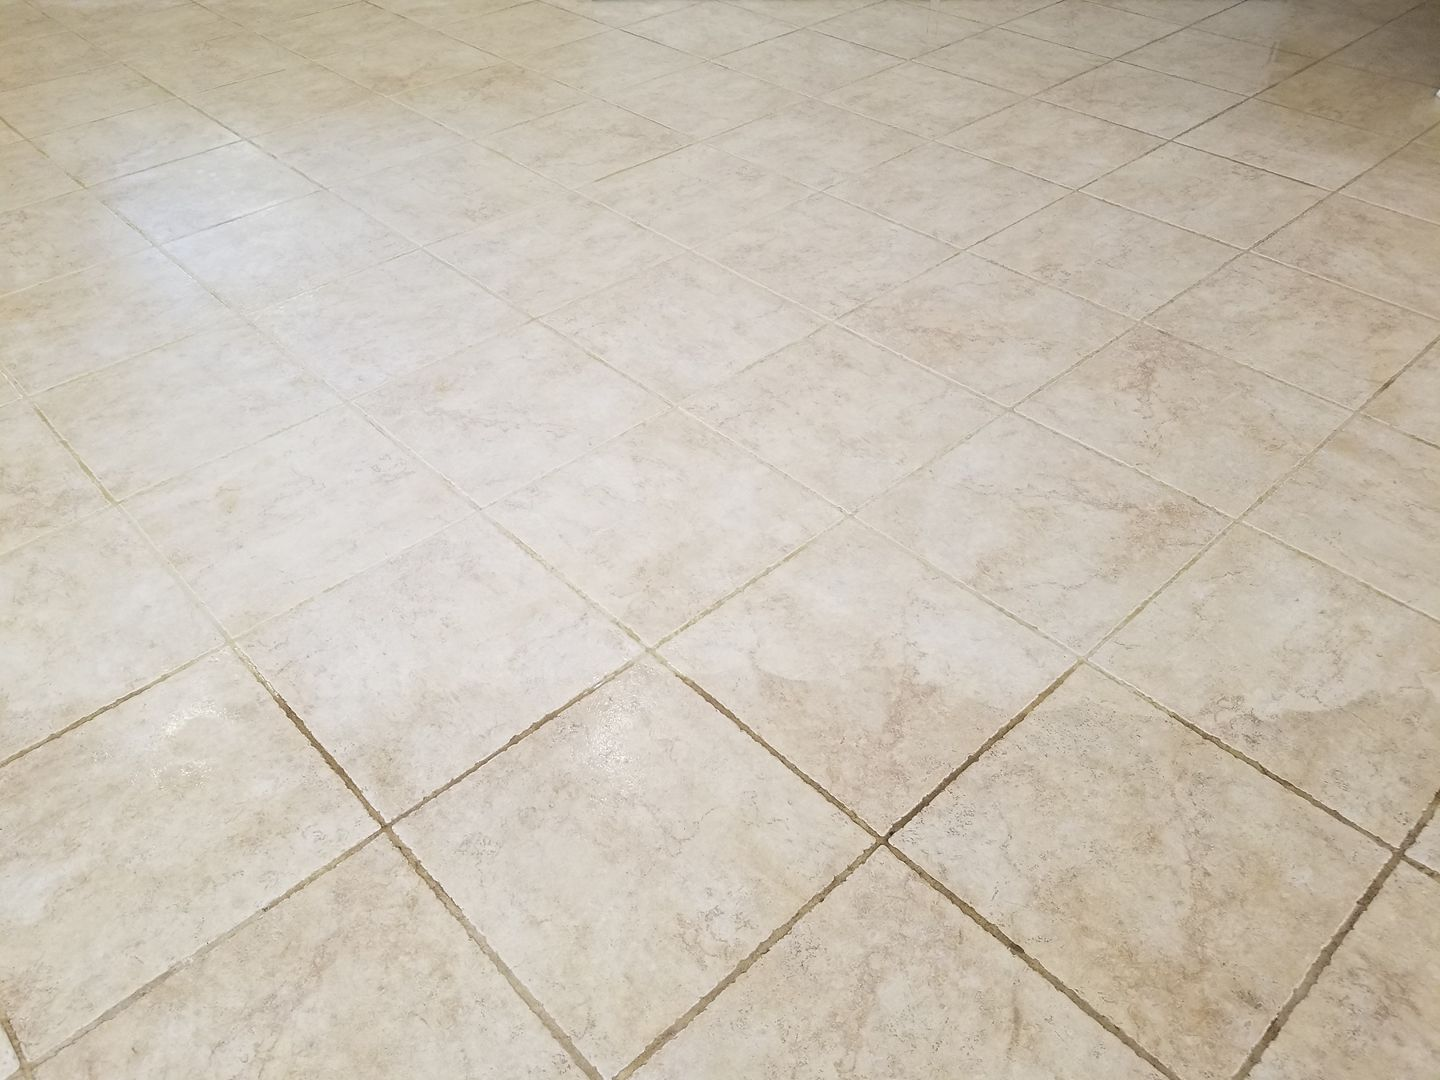 Carpet Cleaning, Upholstery Steam Cleaner, Tile Cleaning